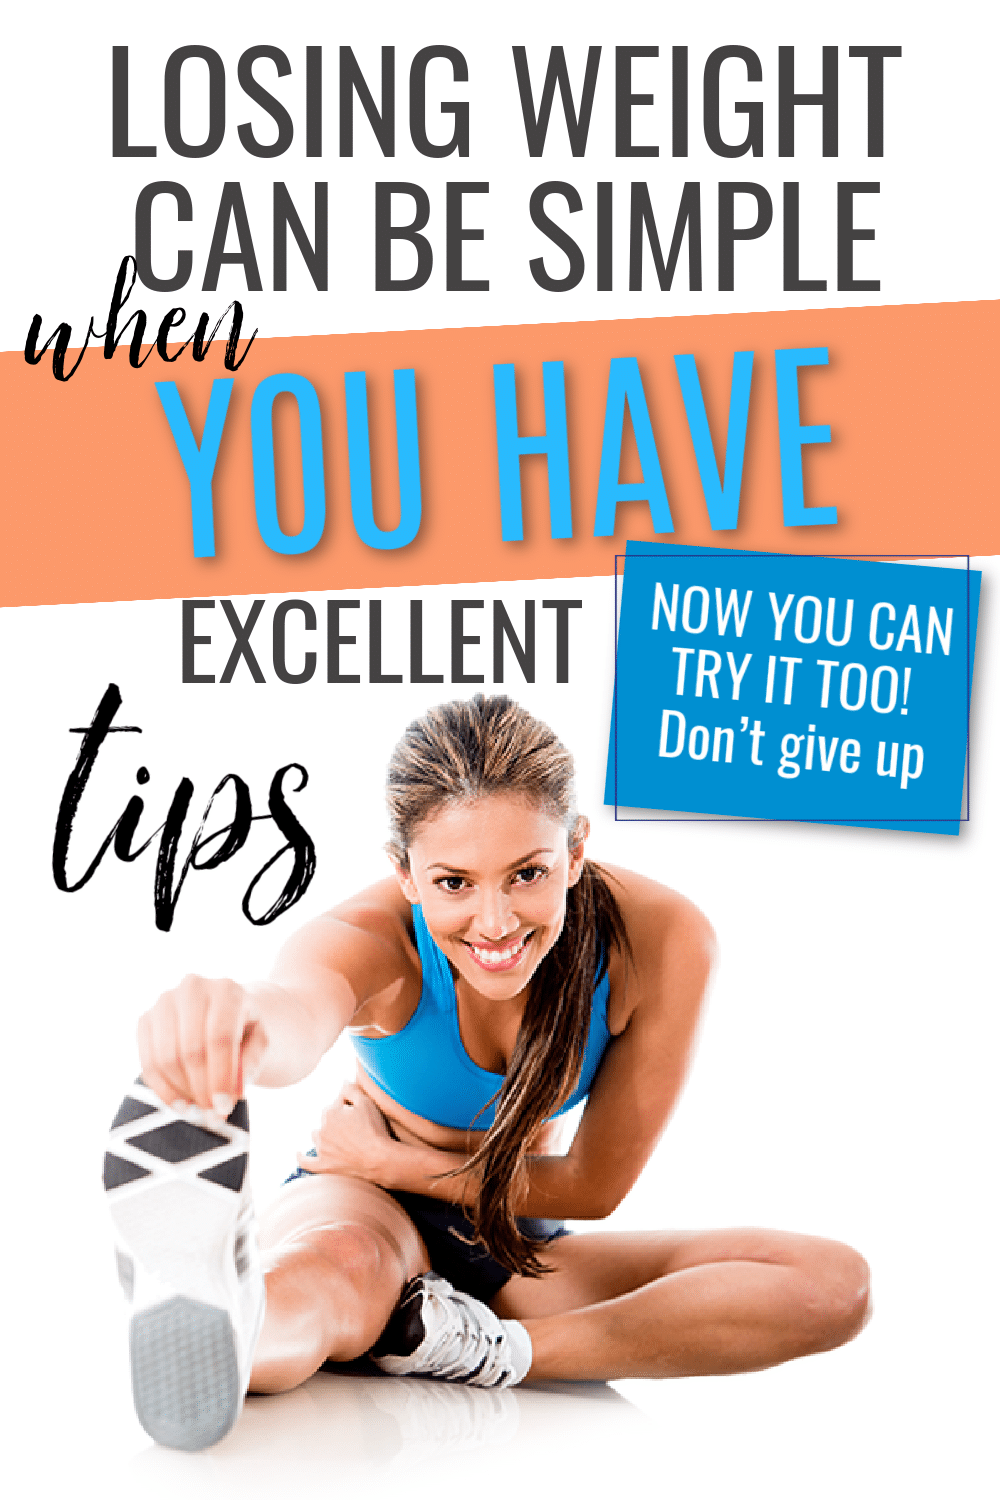 Losing Weight Simple Excellent Tips